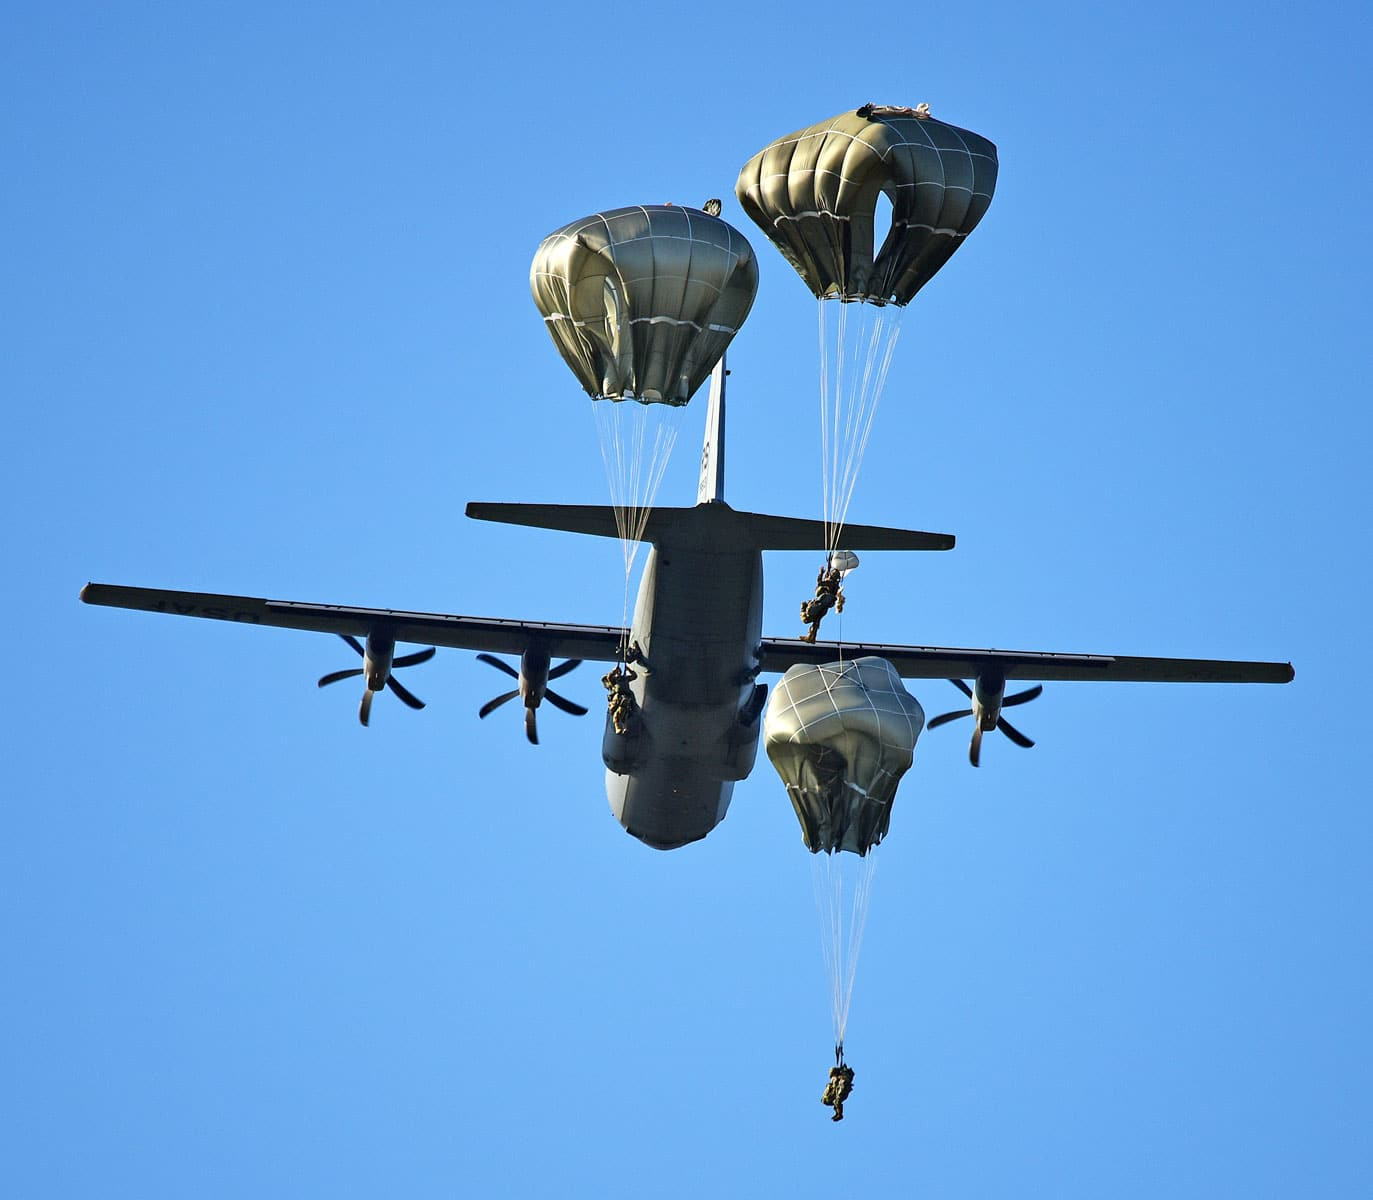 U.S. Army Paratroopers assigned to the 173rd Brigade Support Battalion, 173rd Airborne Brigade, conduct an airborne operation from a U.S. Air Force 86th Air Wing C-130 Hercules aircraft.